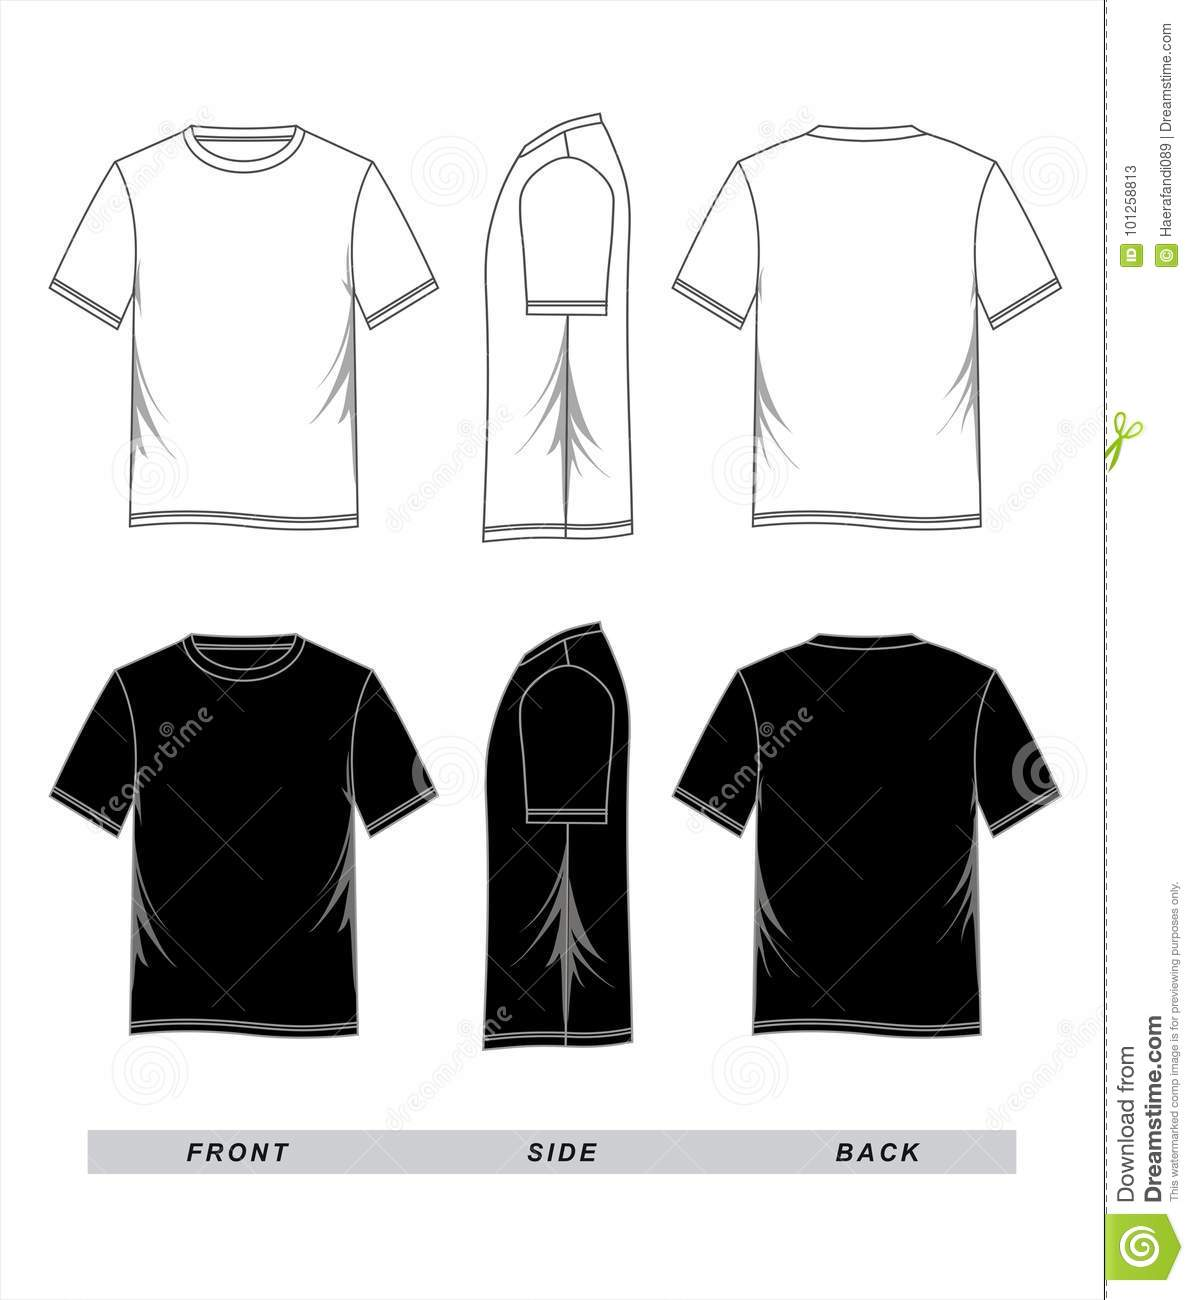 T-shirt Template Black White, Front, Side, Back Stock Vector ...